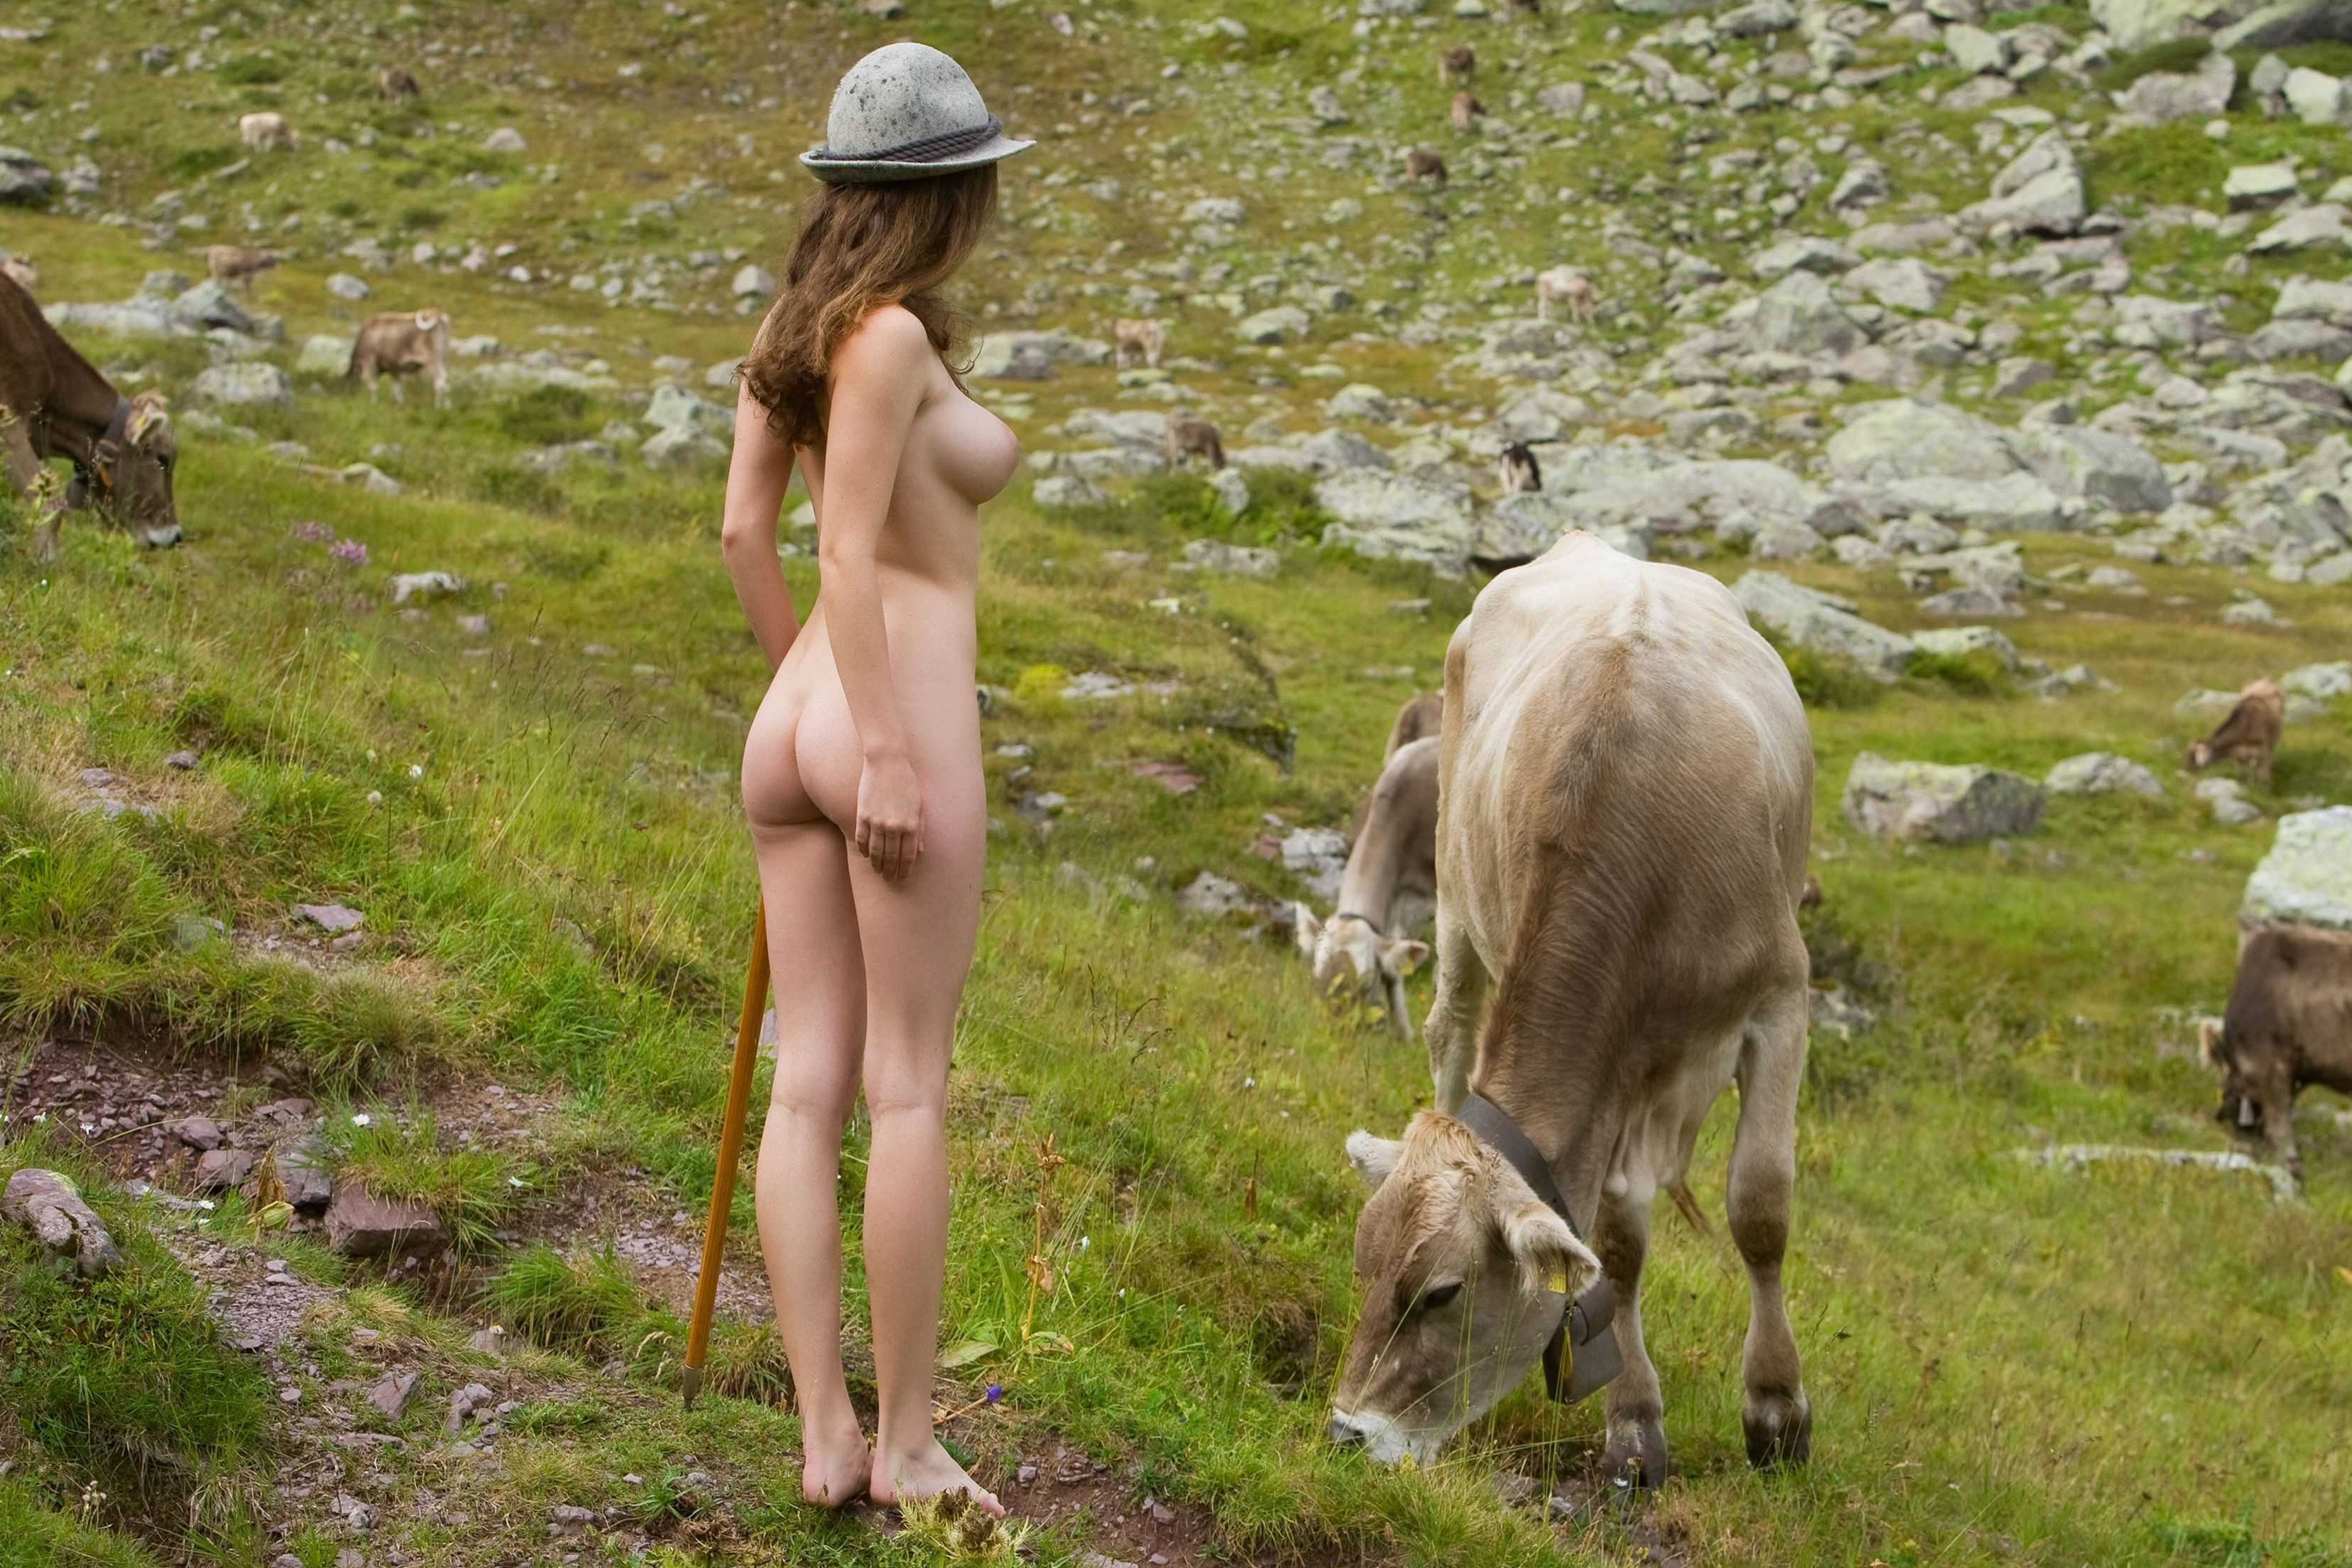 alison arngrim nude pics from playboy